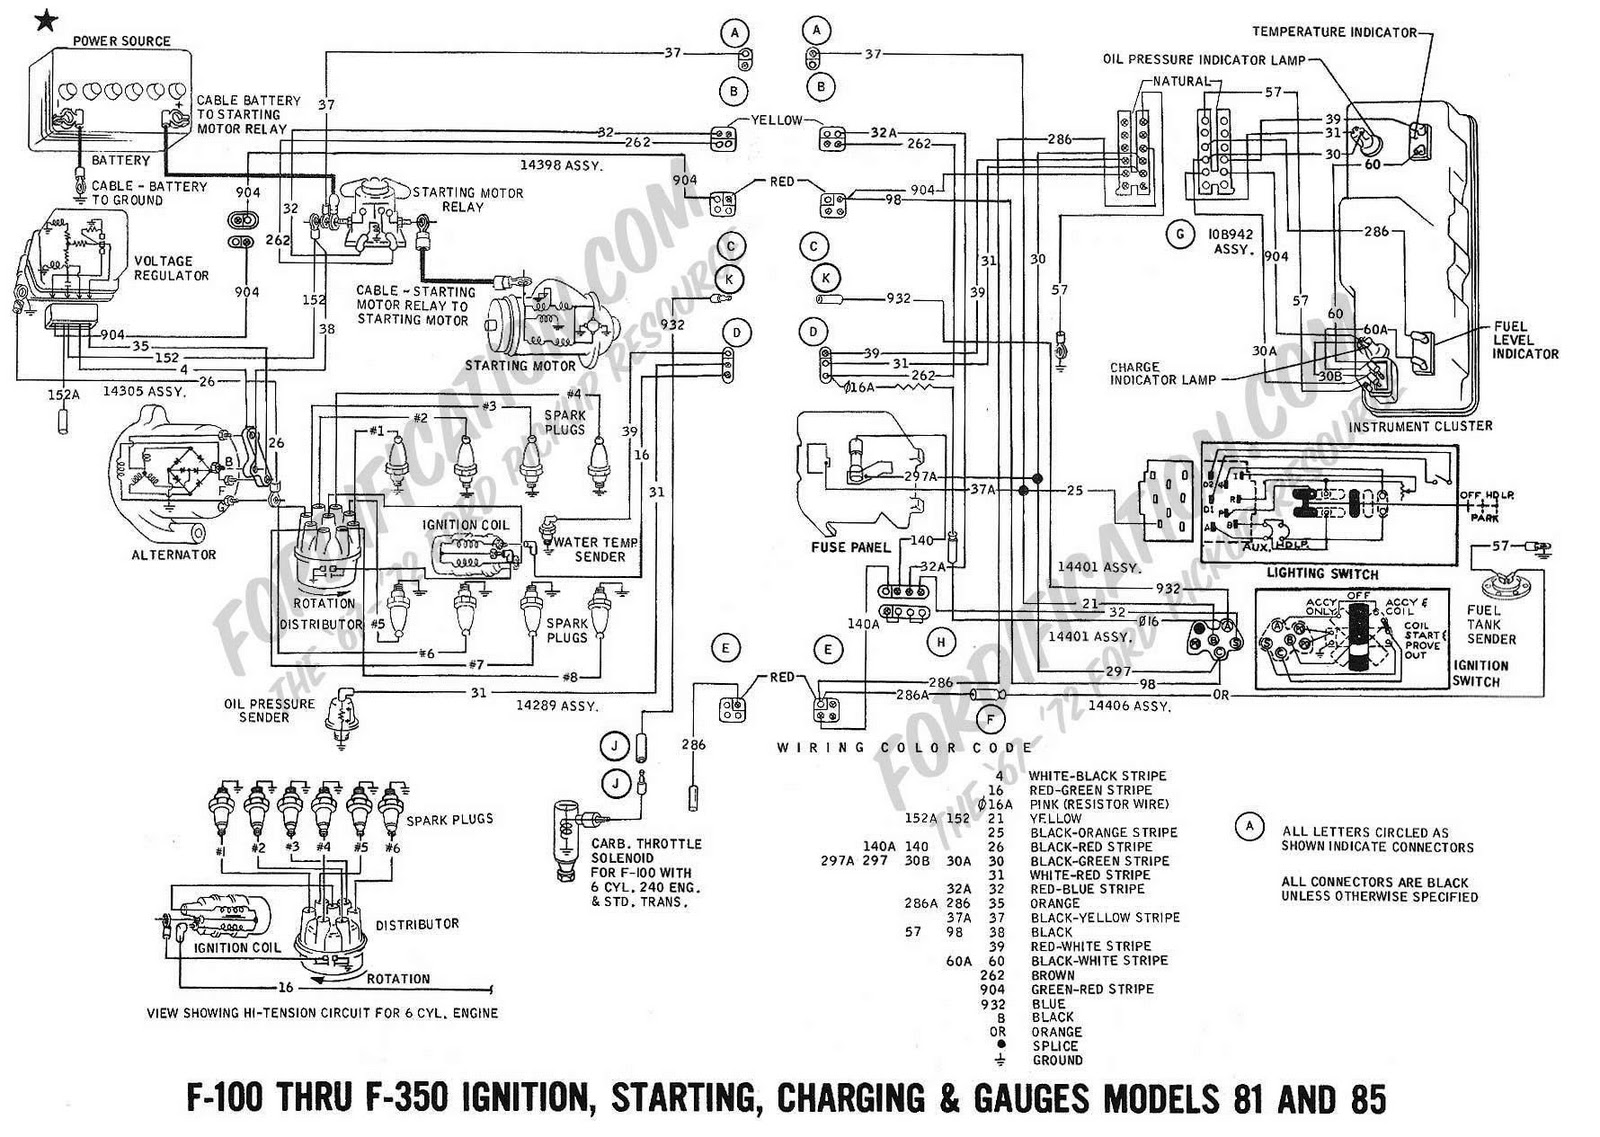 Ford Territory Wiring Diagram Download from 3.bp.blogspot.com